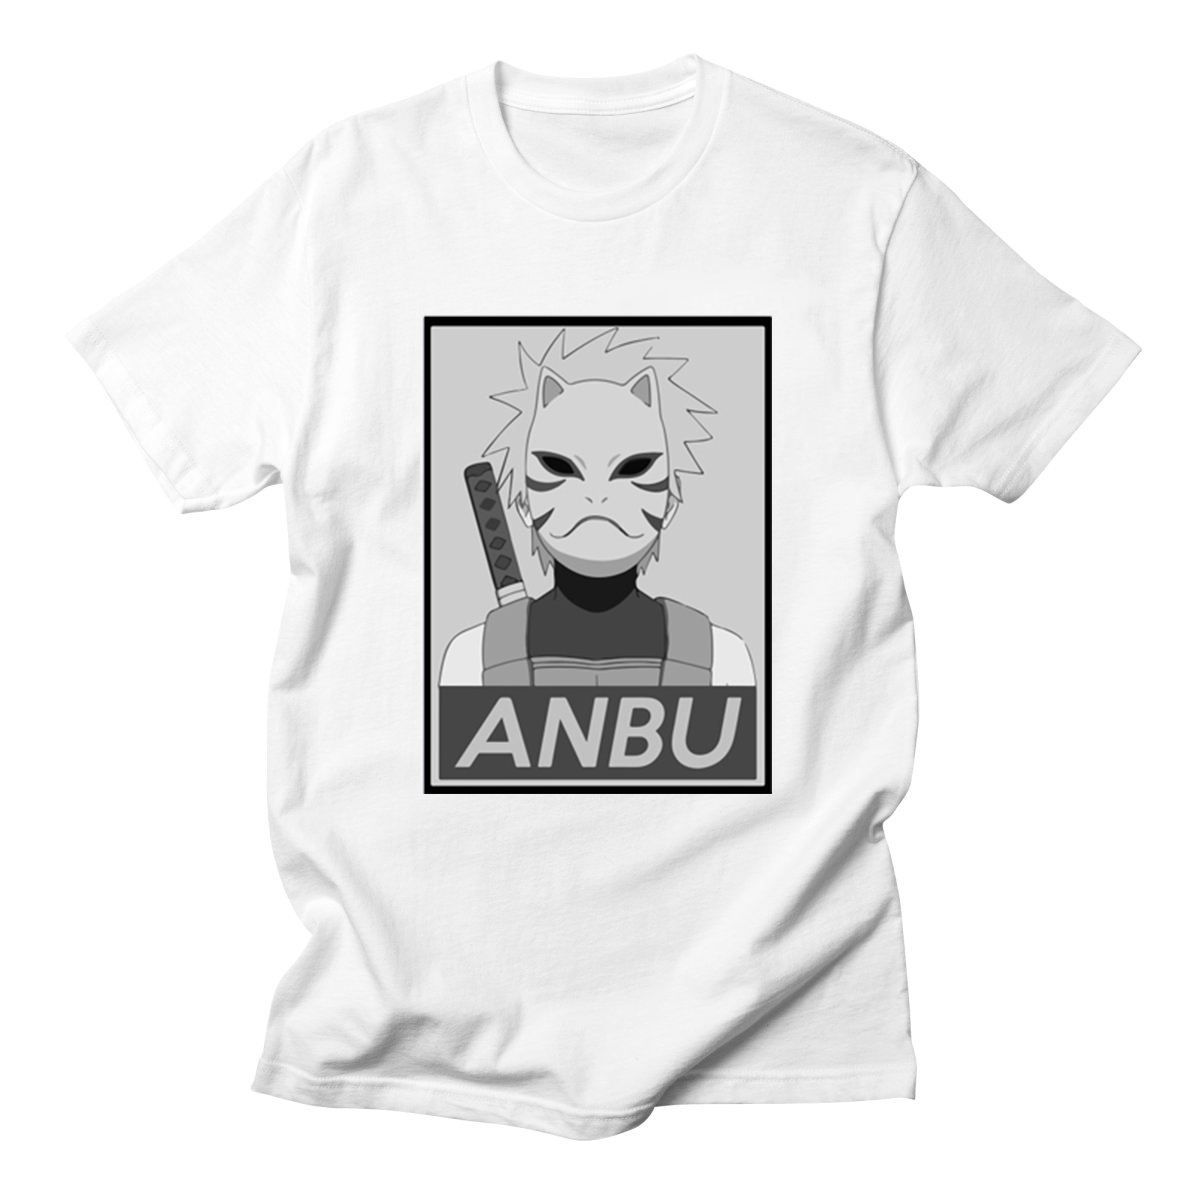 NARUTO Anime ANBU Printed Japan T-shirts Streetwear Short Sleeve O-Neck Tees Tops Summer Funny Tops For Men 2018